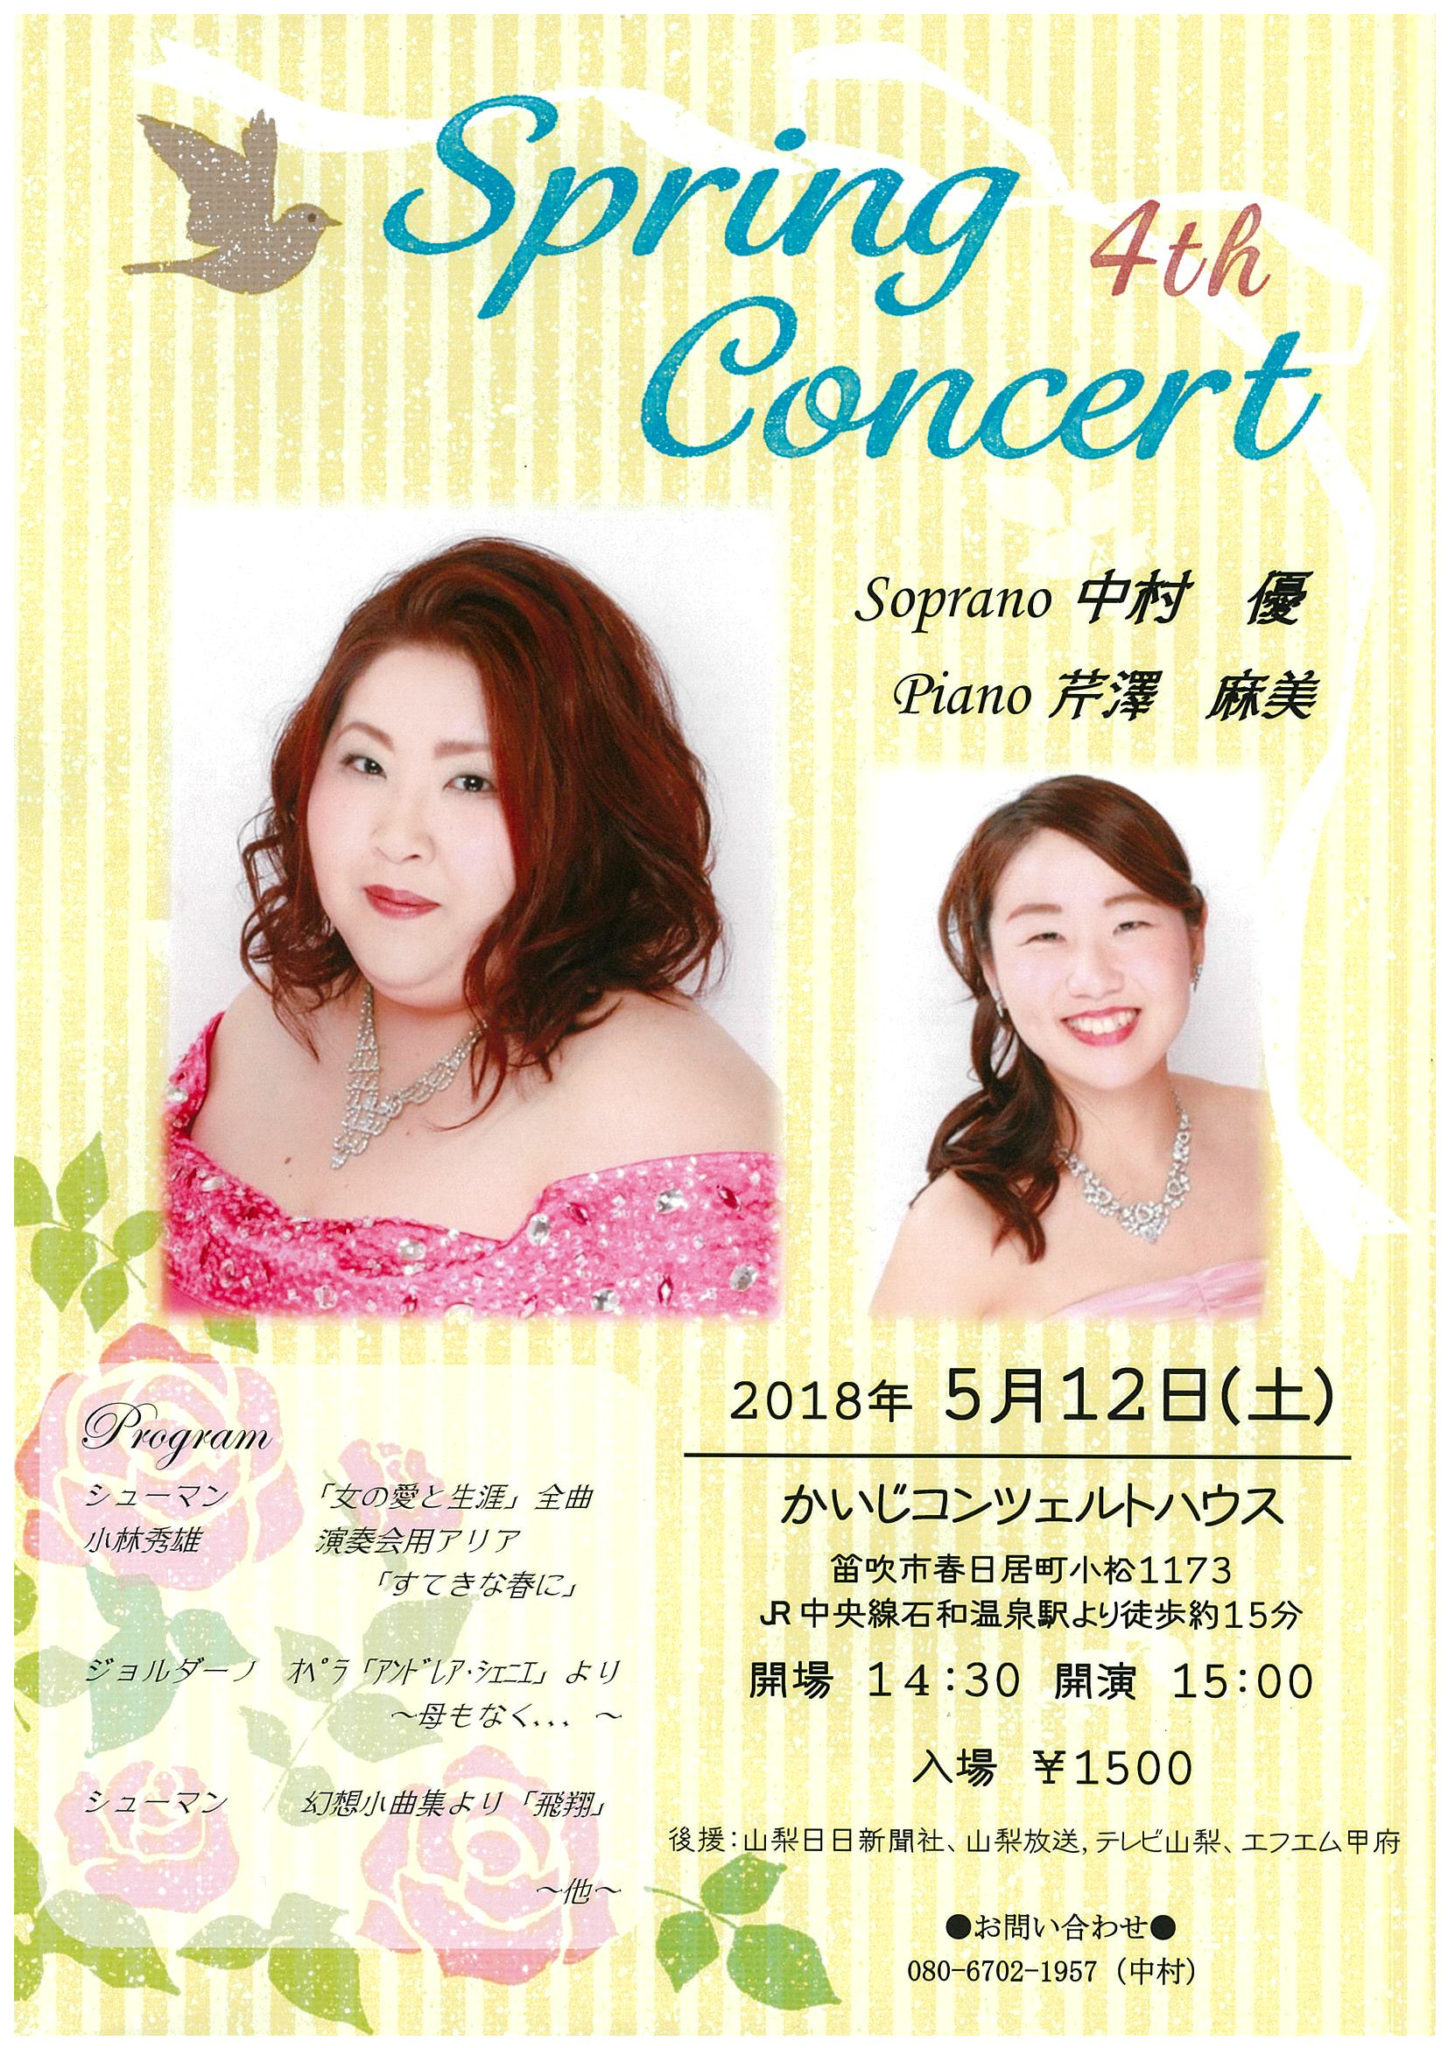 4th Spring Concert